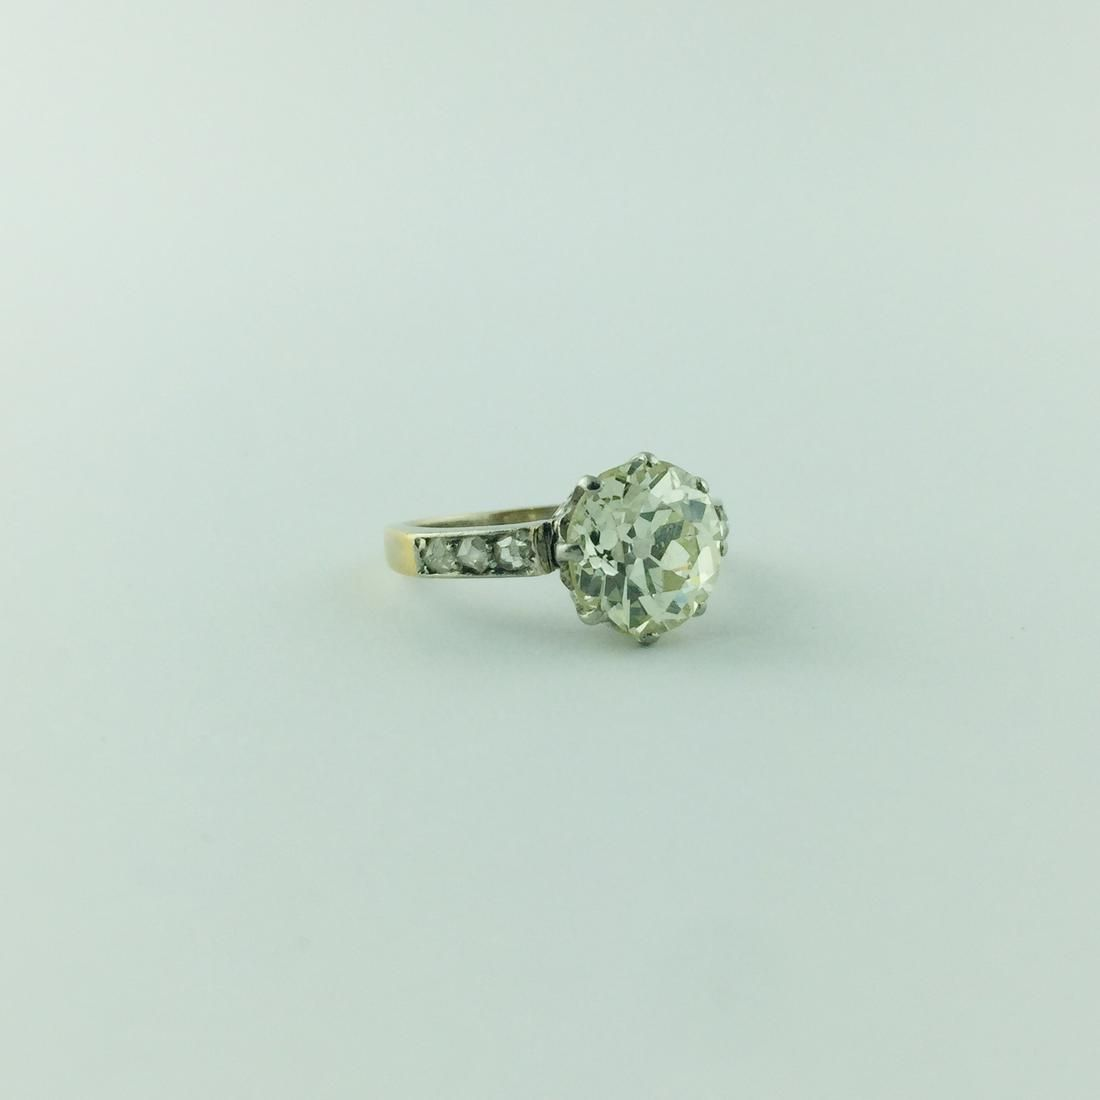 Solitaire ring in 18 K white and yellow gold with